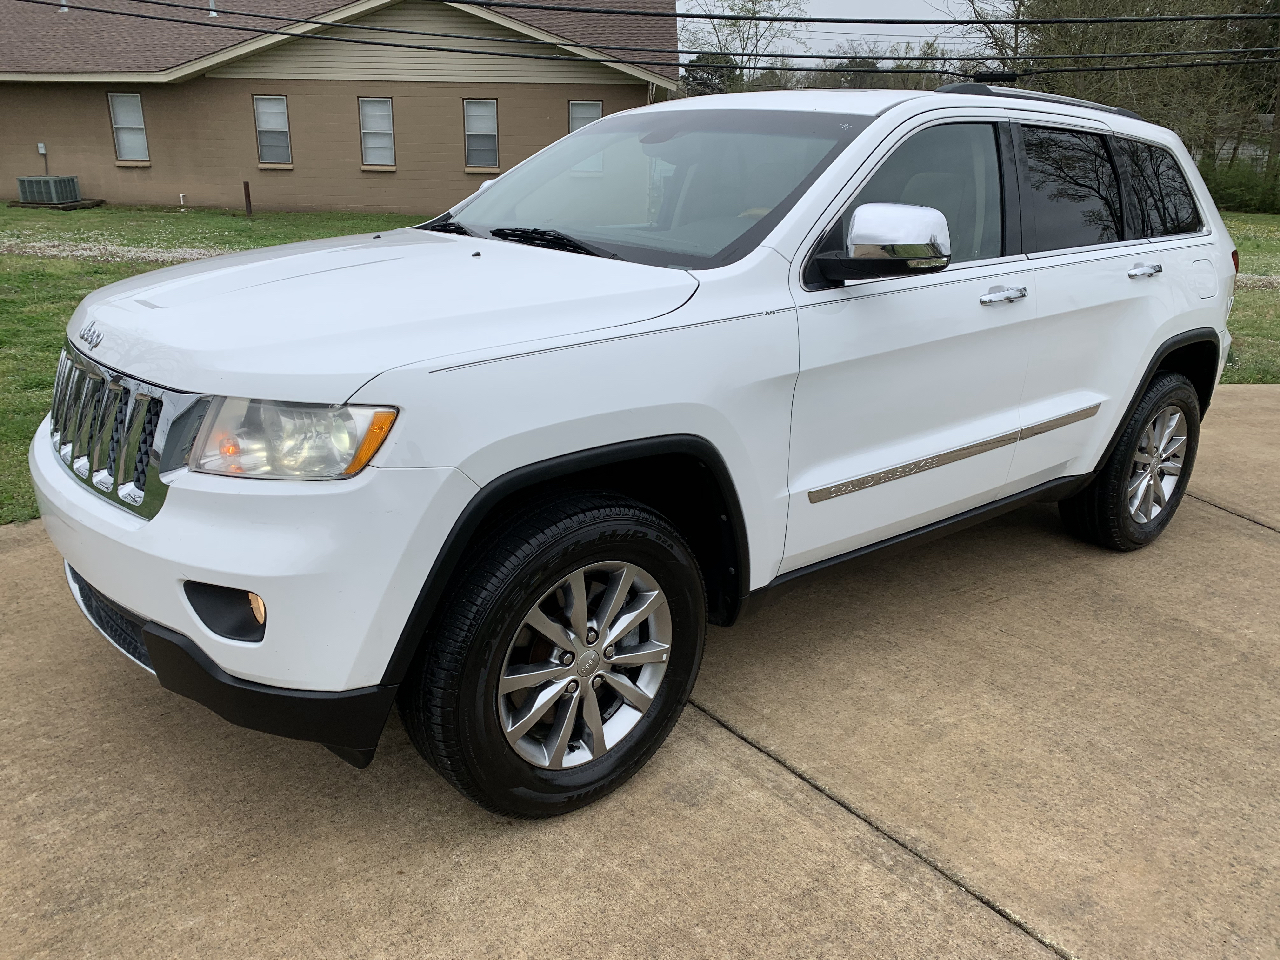 Jeep Grand Cherokee 4dr Overland 4WD 2013